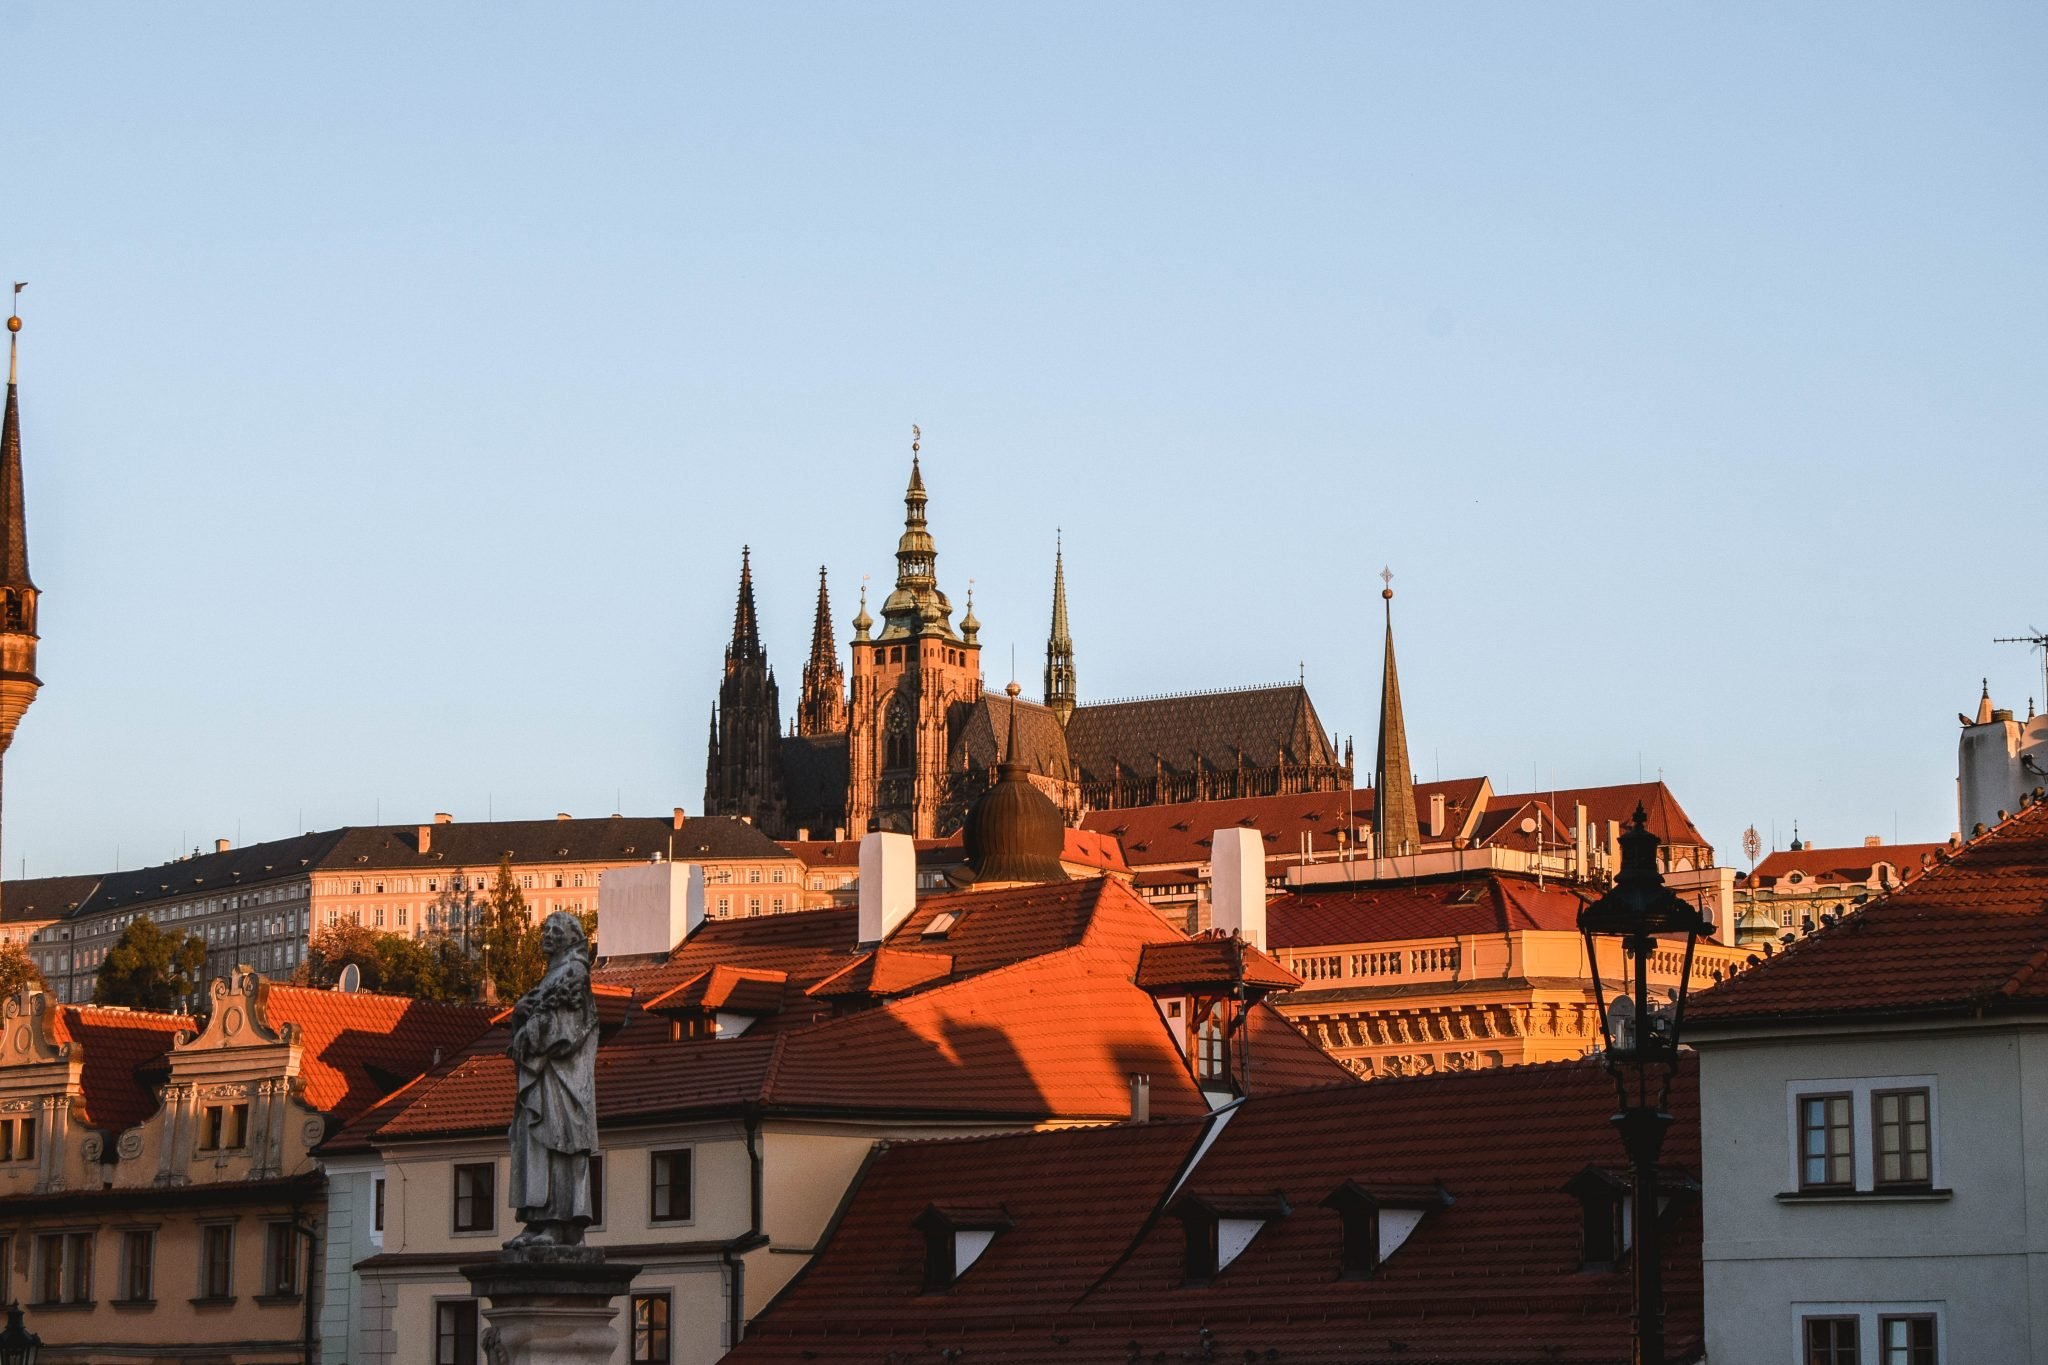 Wanderers & Warriors - Charlie & Lauren UK Travel Couple - Top 9 FUN Things To Do In Prague - What To See In Prague Castle